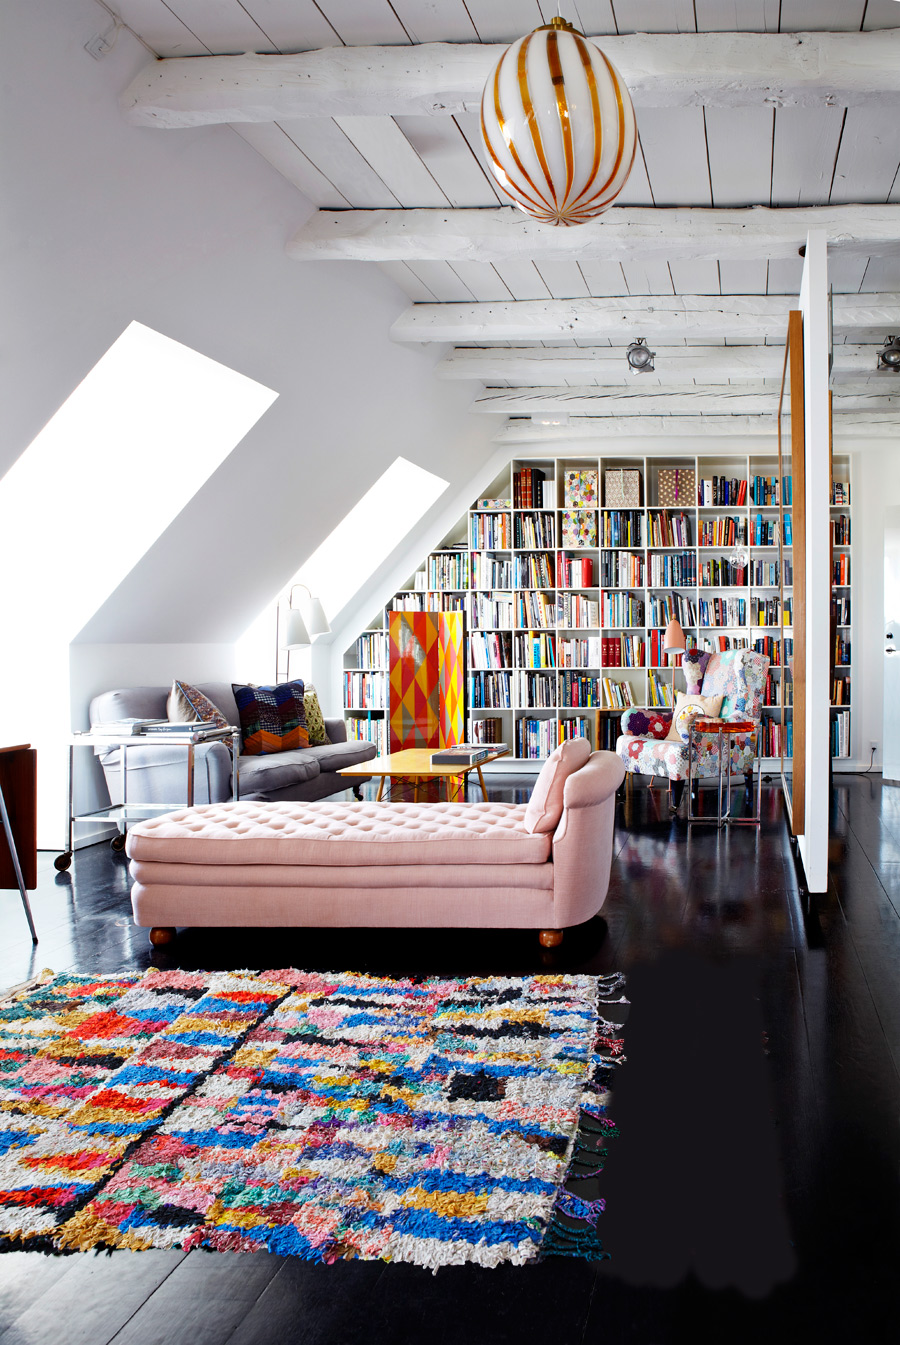 Make A Living Room A Library: 20 Gorgeous Home Libraries